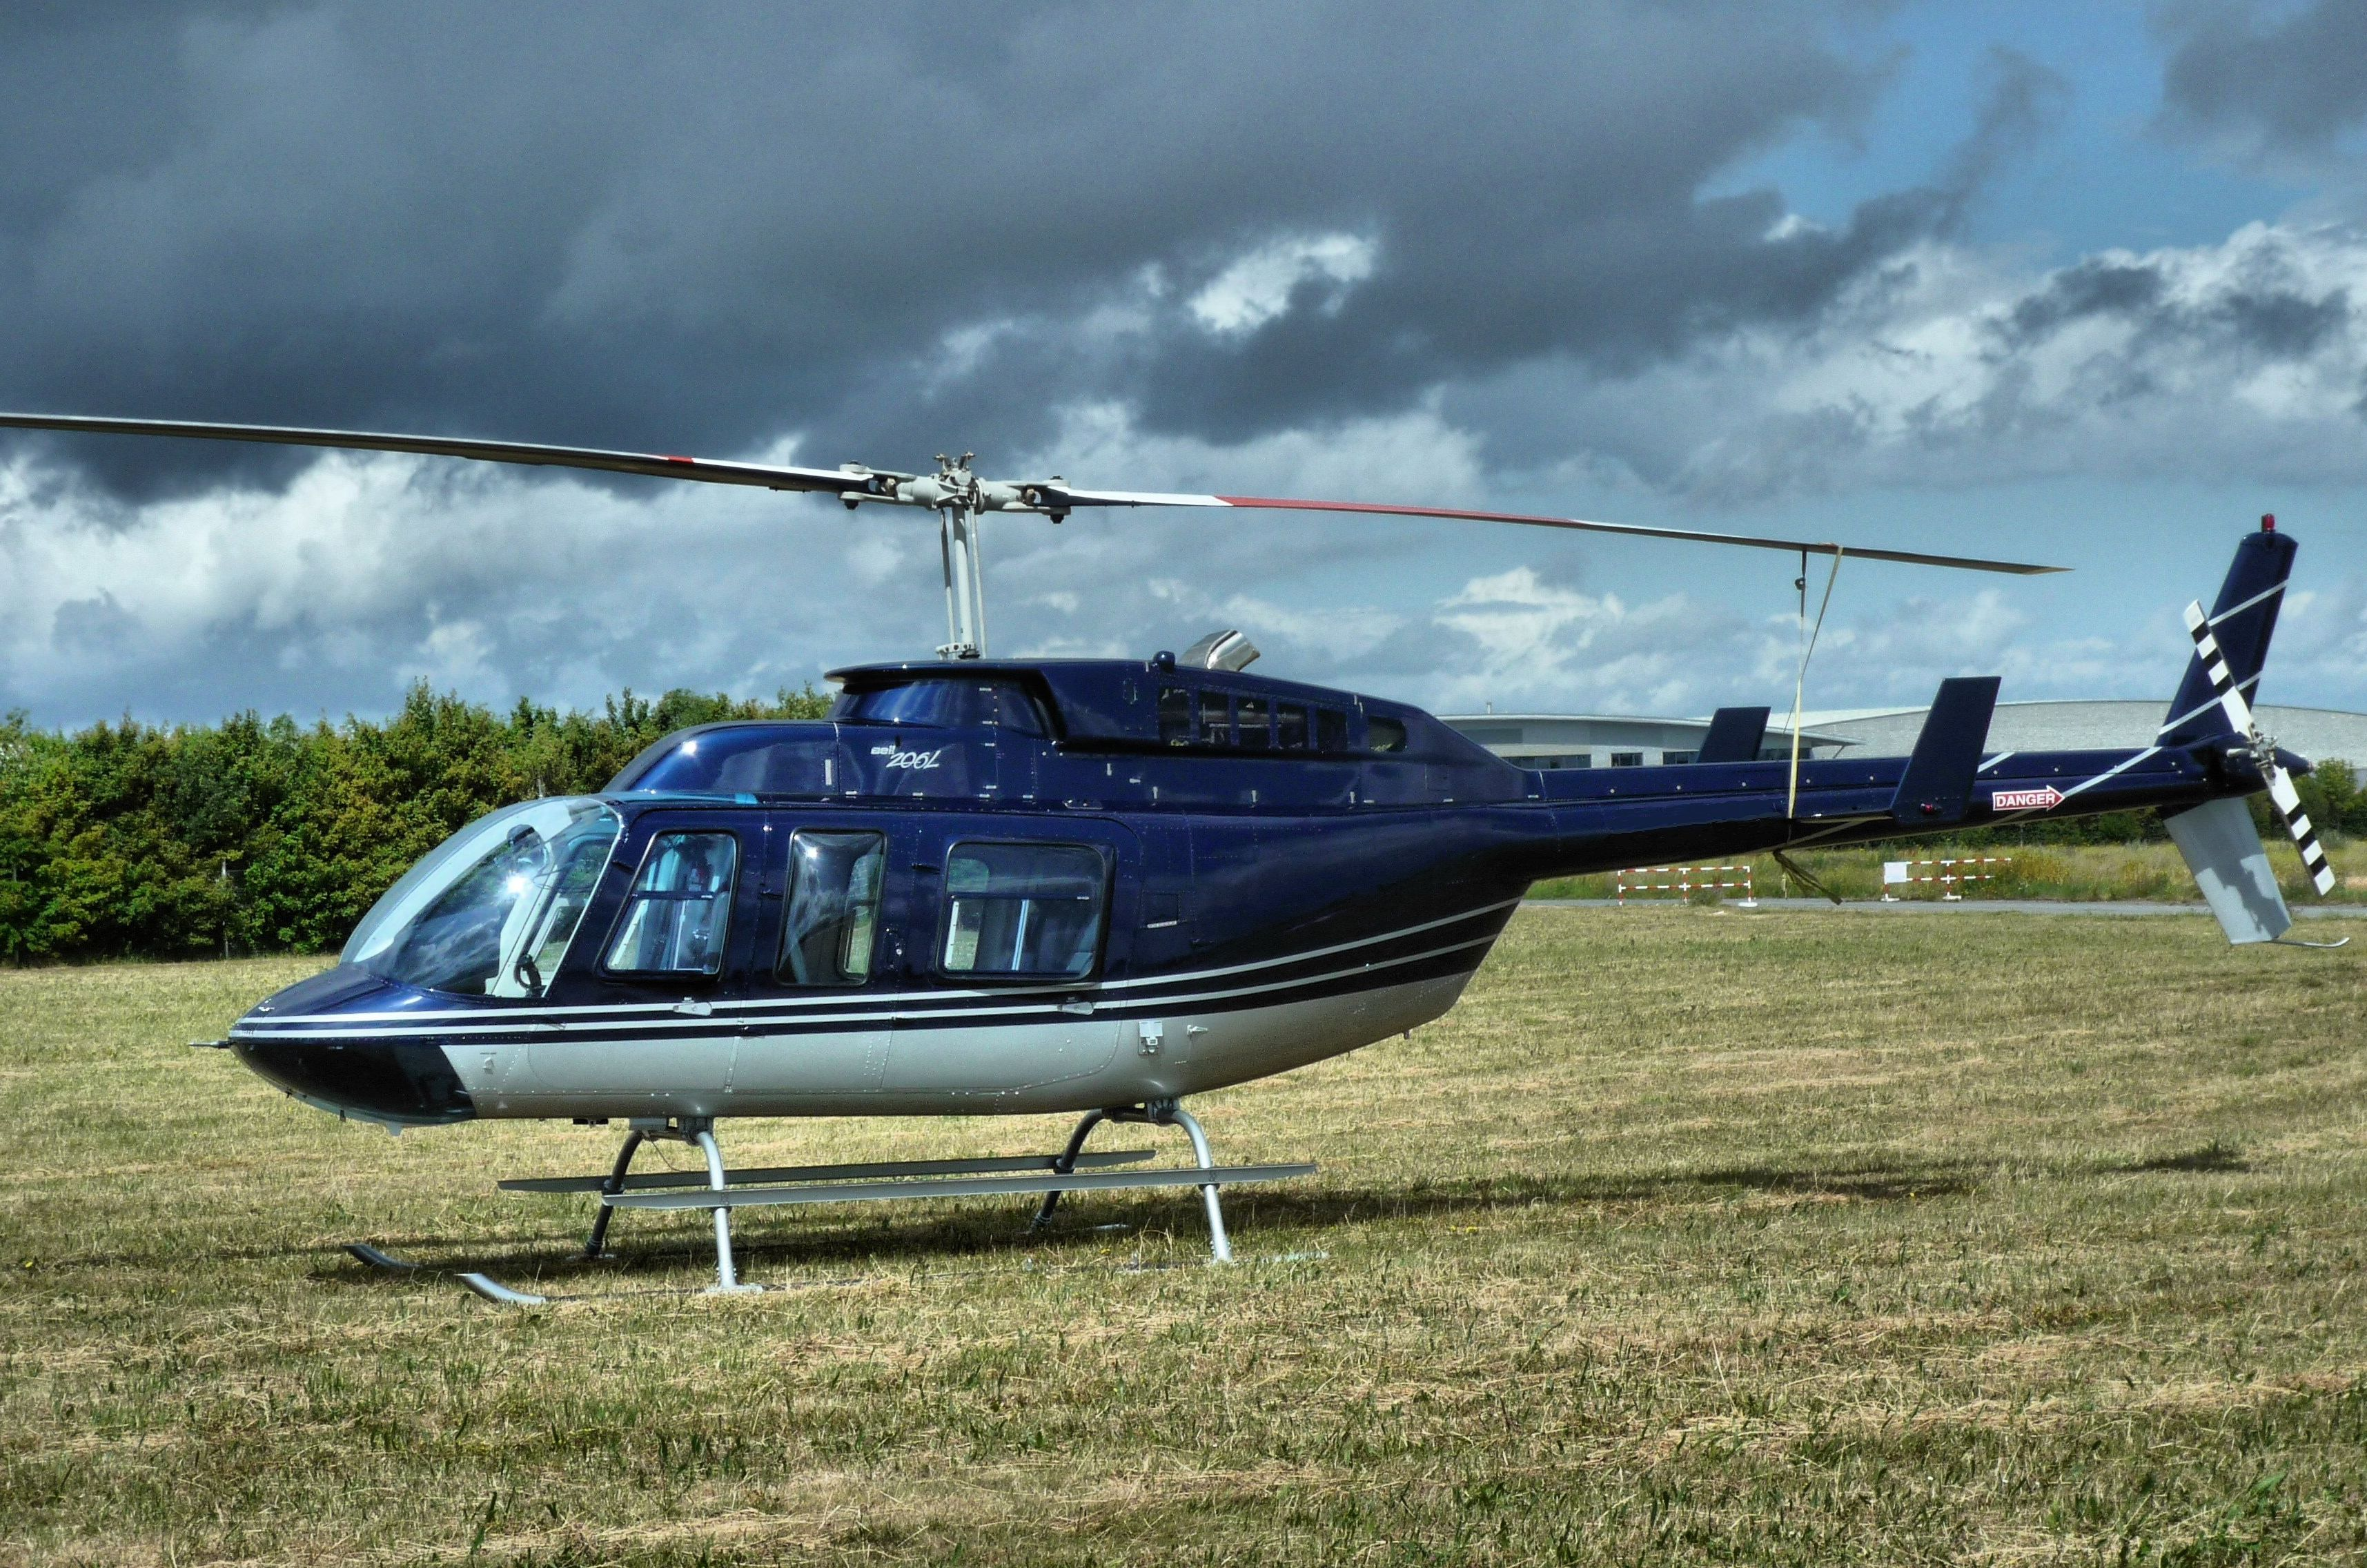 r22 helicopters with Bell 206 Longranger on File Cabri G2 together with Robinson r22 besides Ly ing Eliminates Frequent Use Requirement On 2200 Tbo For Robinson Helicopters in addition TECH MONT Helicopter  pany Robinson R22 Beta OM RZZ moreover Guimbal Cabri G2.